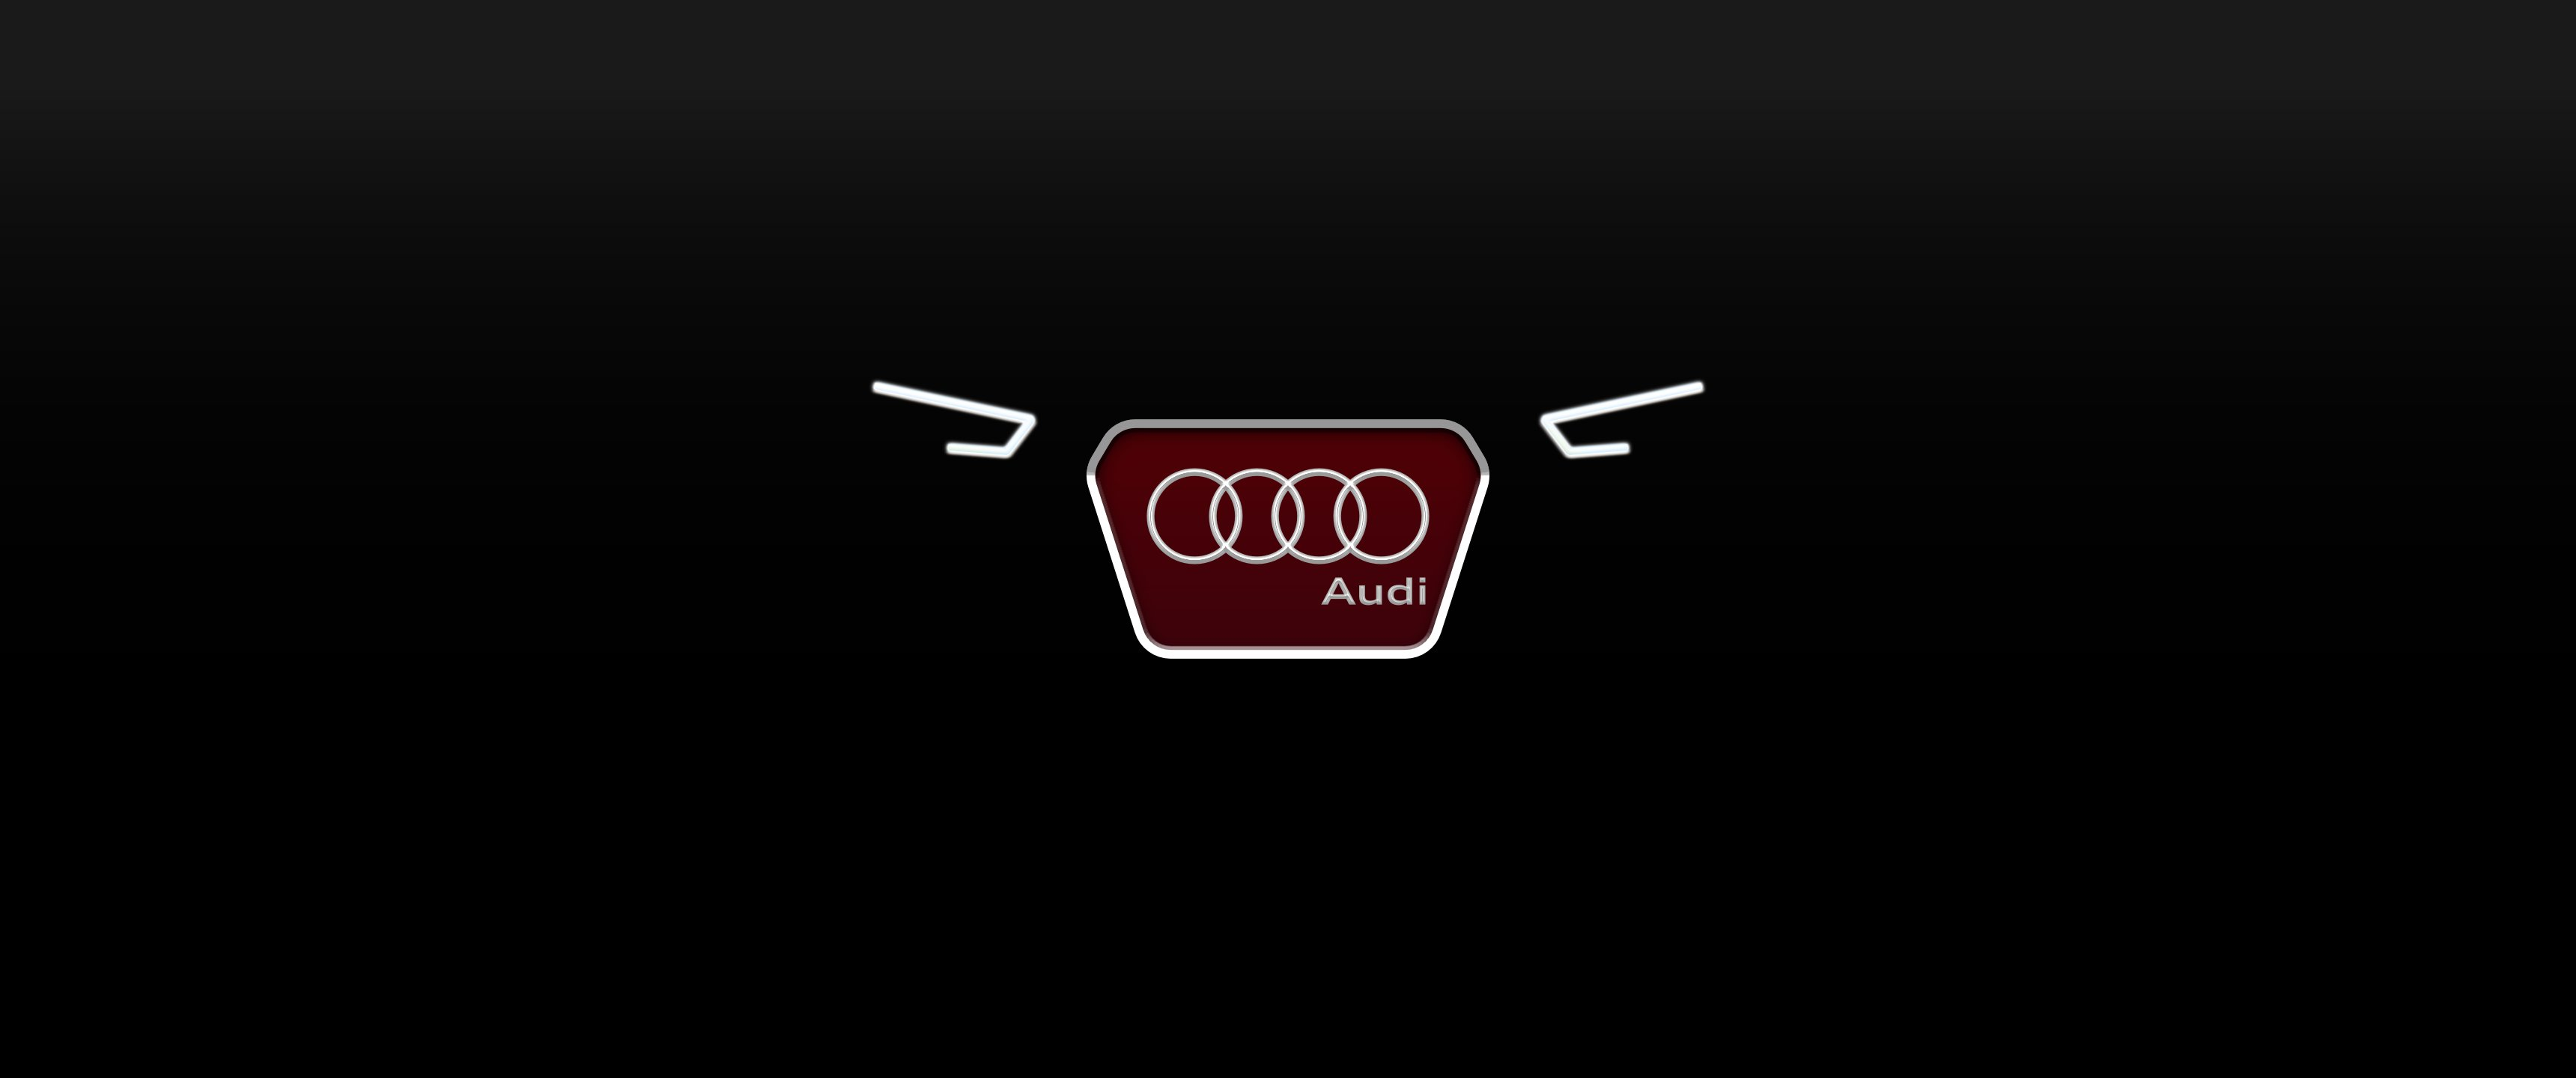 Audi 4k Wallpapers For Your Desktop Or Mobile Screen Free